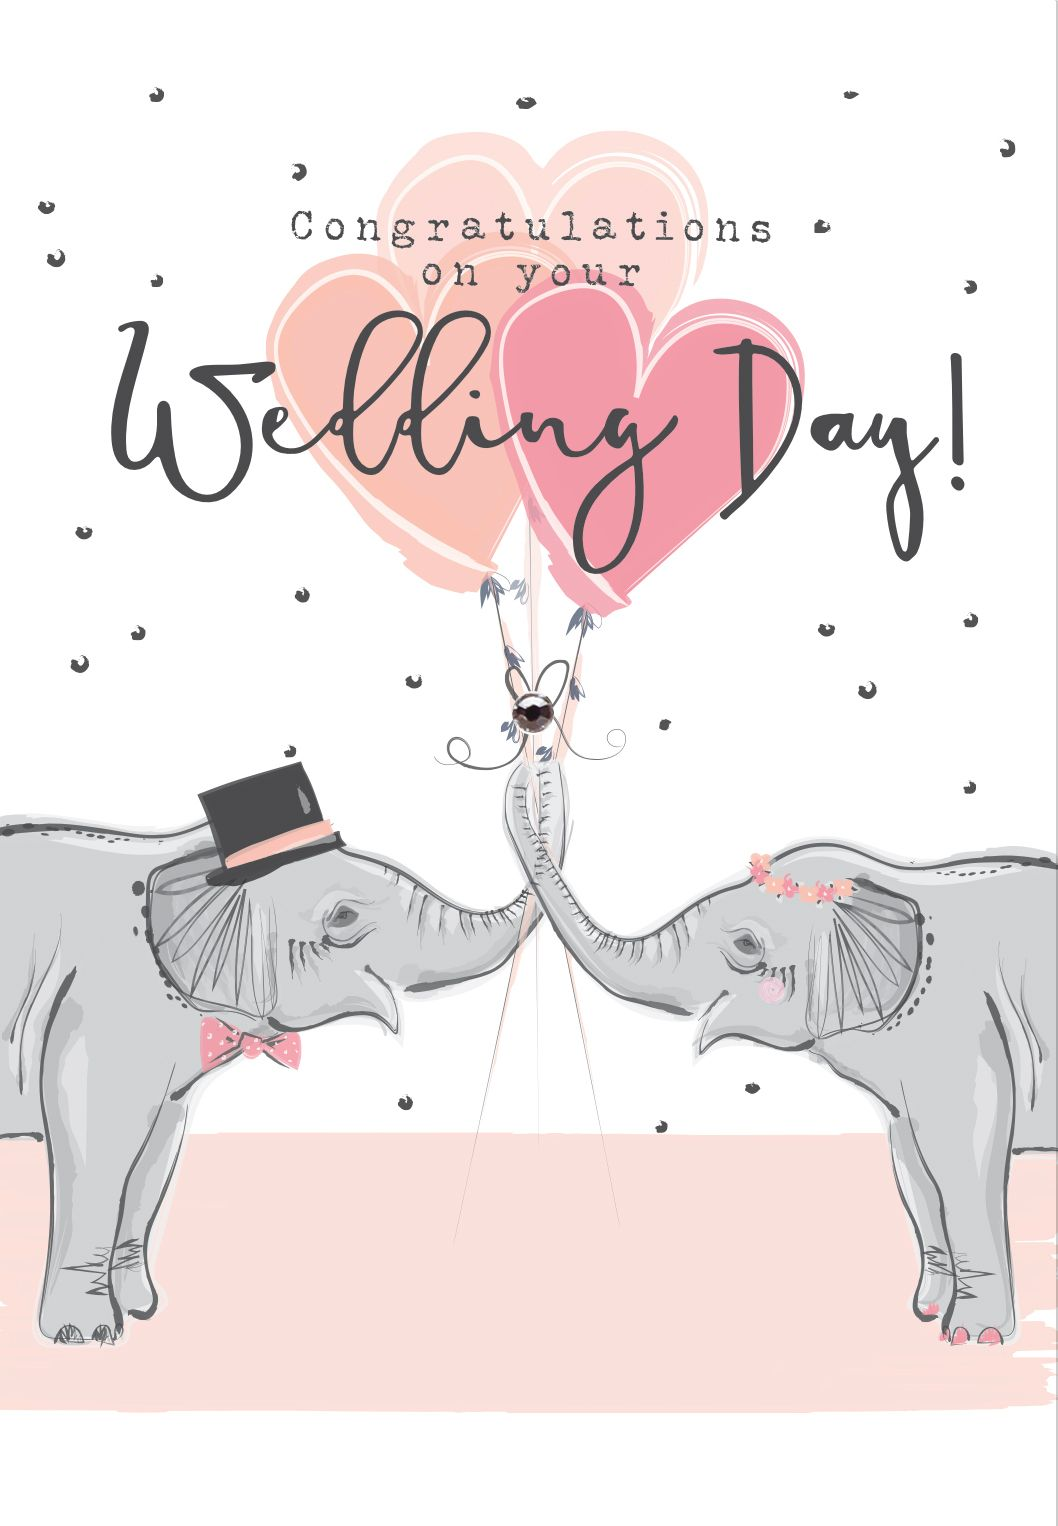 Wedding Day Cards - CONGRATULATIONS On Your WEDDING Day - WEDDING Cards - C